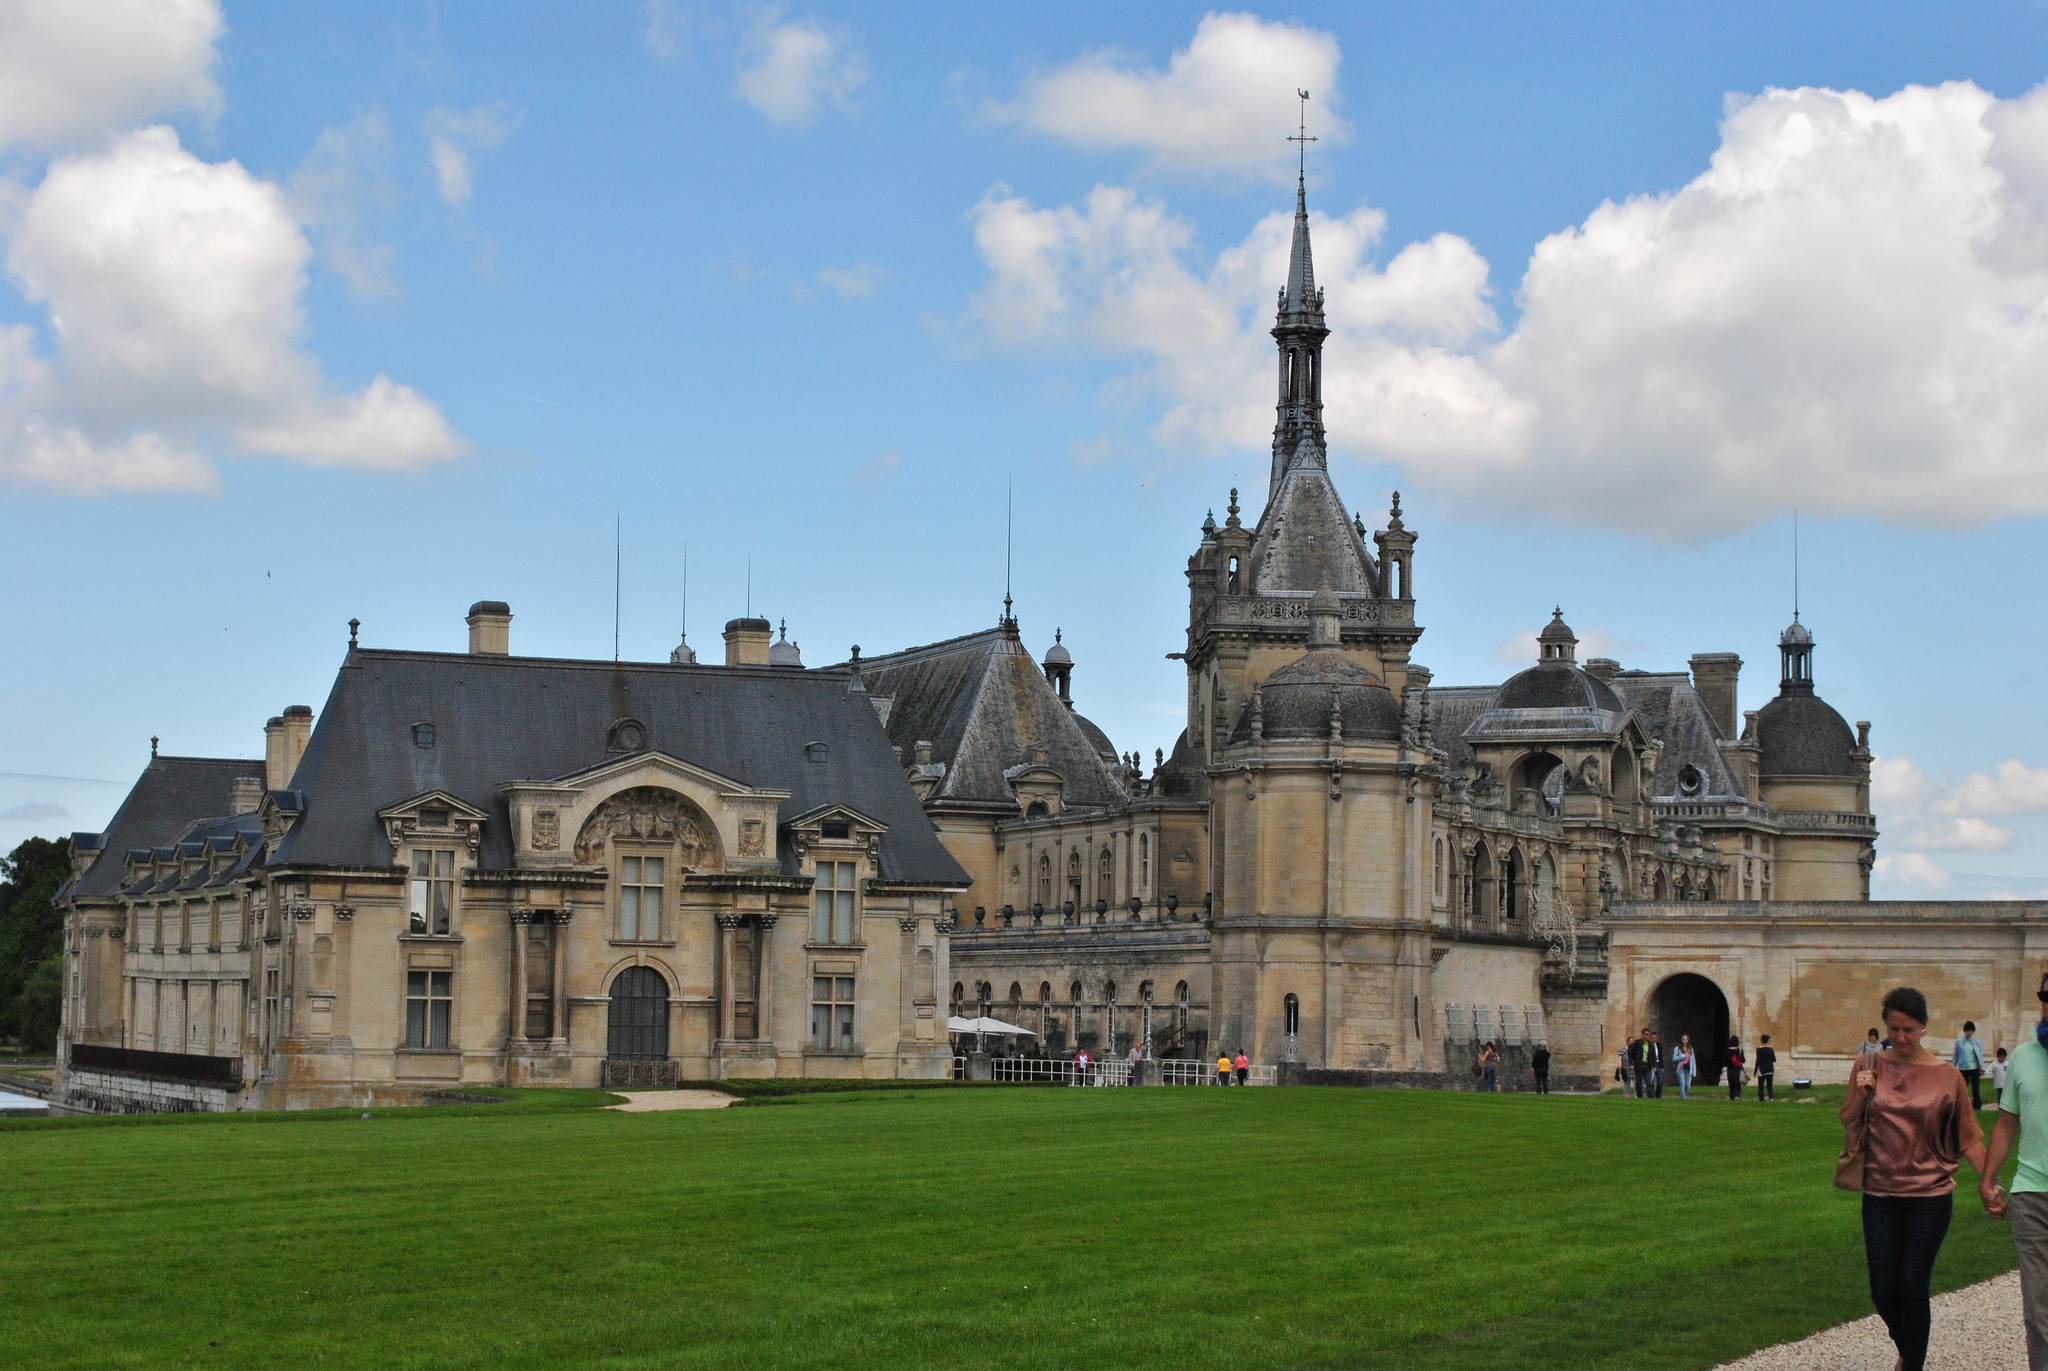 Ch teau de chantilly castle in france thousand wonders - Chateau de chantilly adresse ...